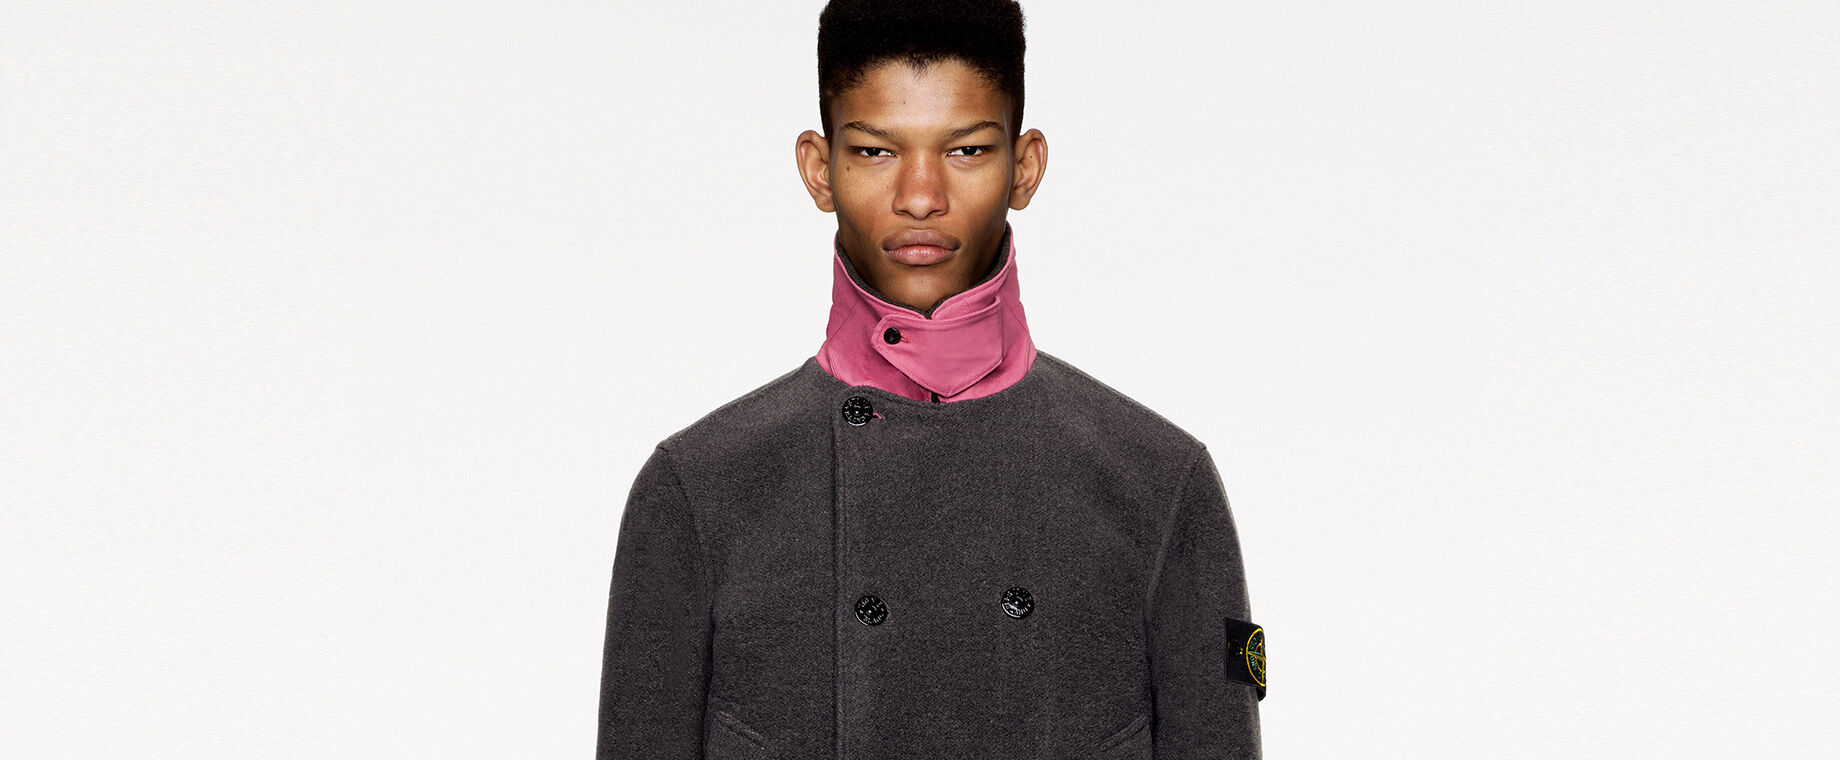 Model wearing dark colored pants and a dark gray pea coat with pink standing collar, chin strap held by button fastening, double breasted buttoning, two patch pockets and pink parallel stripes on the cuffs and lower hem.